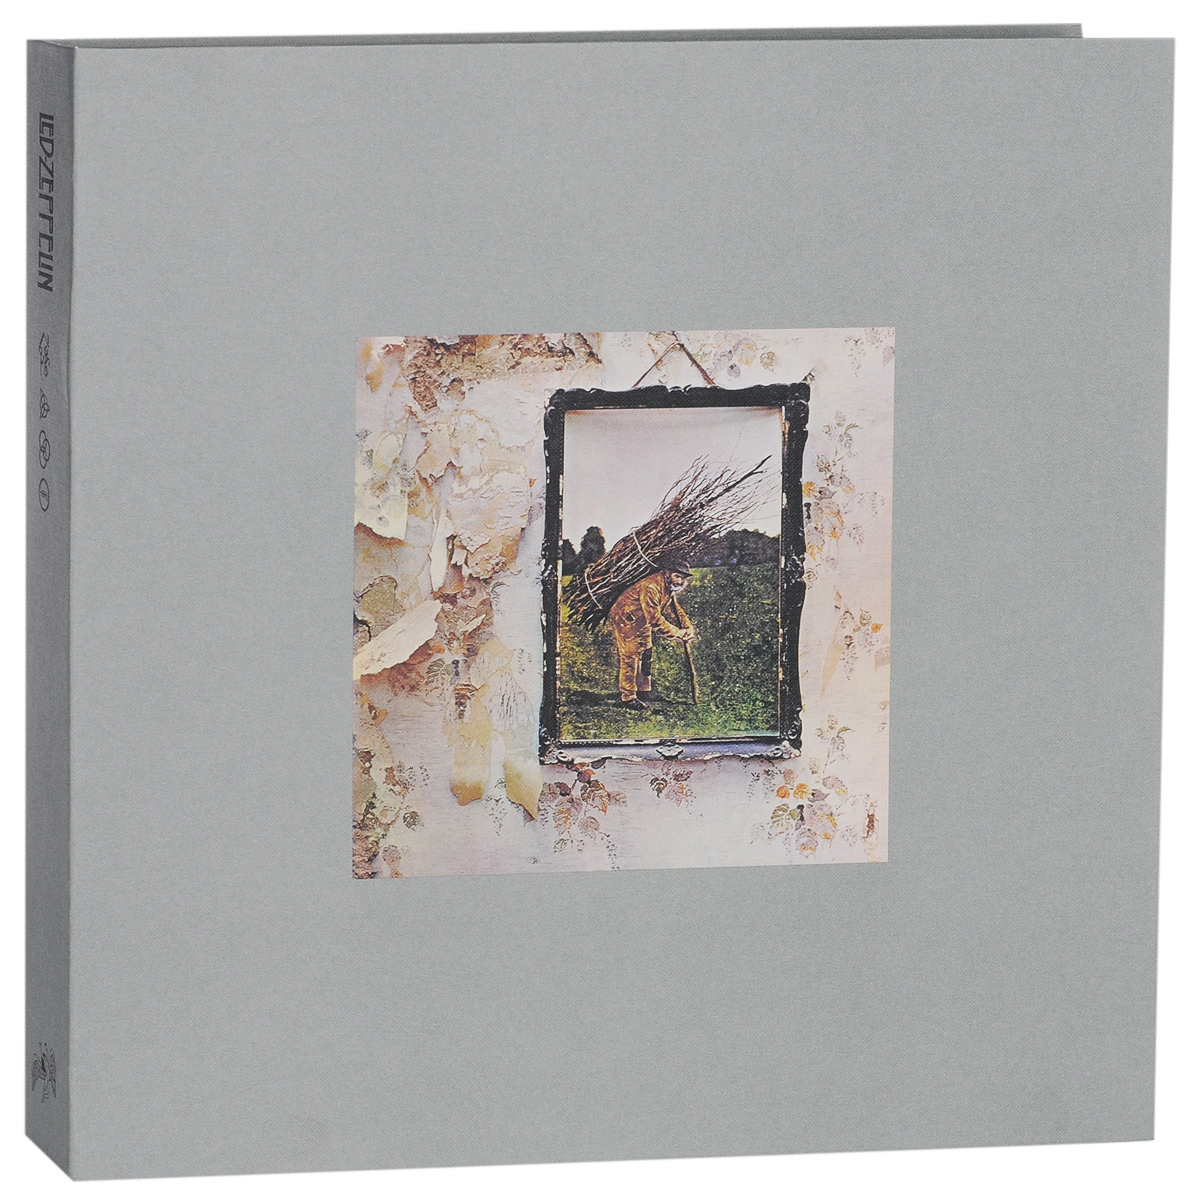 Led Zeppelin Led Zeppelin. IV. Super Deluxe Edition (2 LP + 2 CD) led zeppelin – led zeppelin iii deluxe edition 2 lp